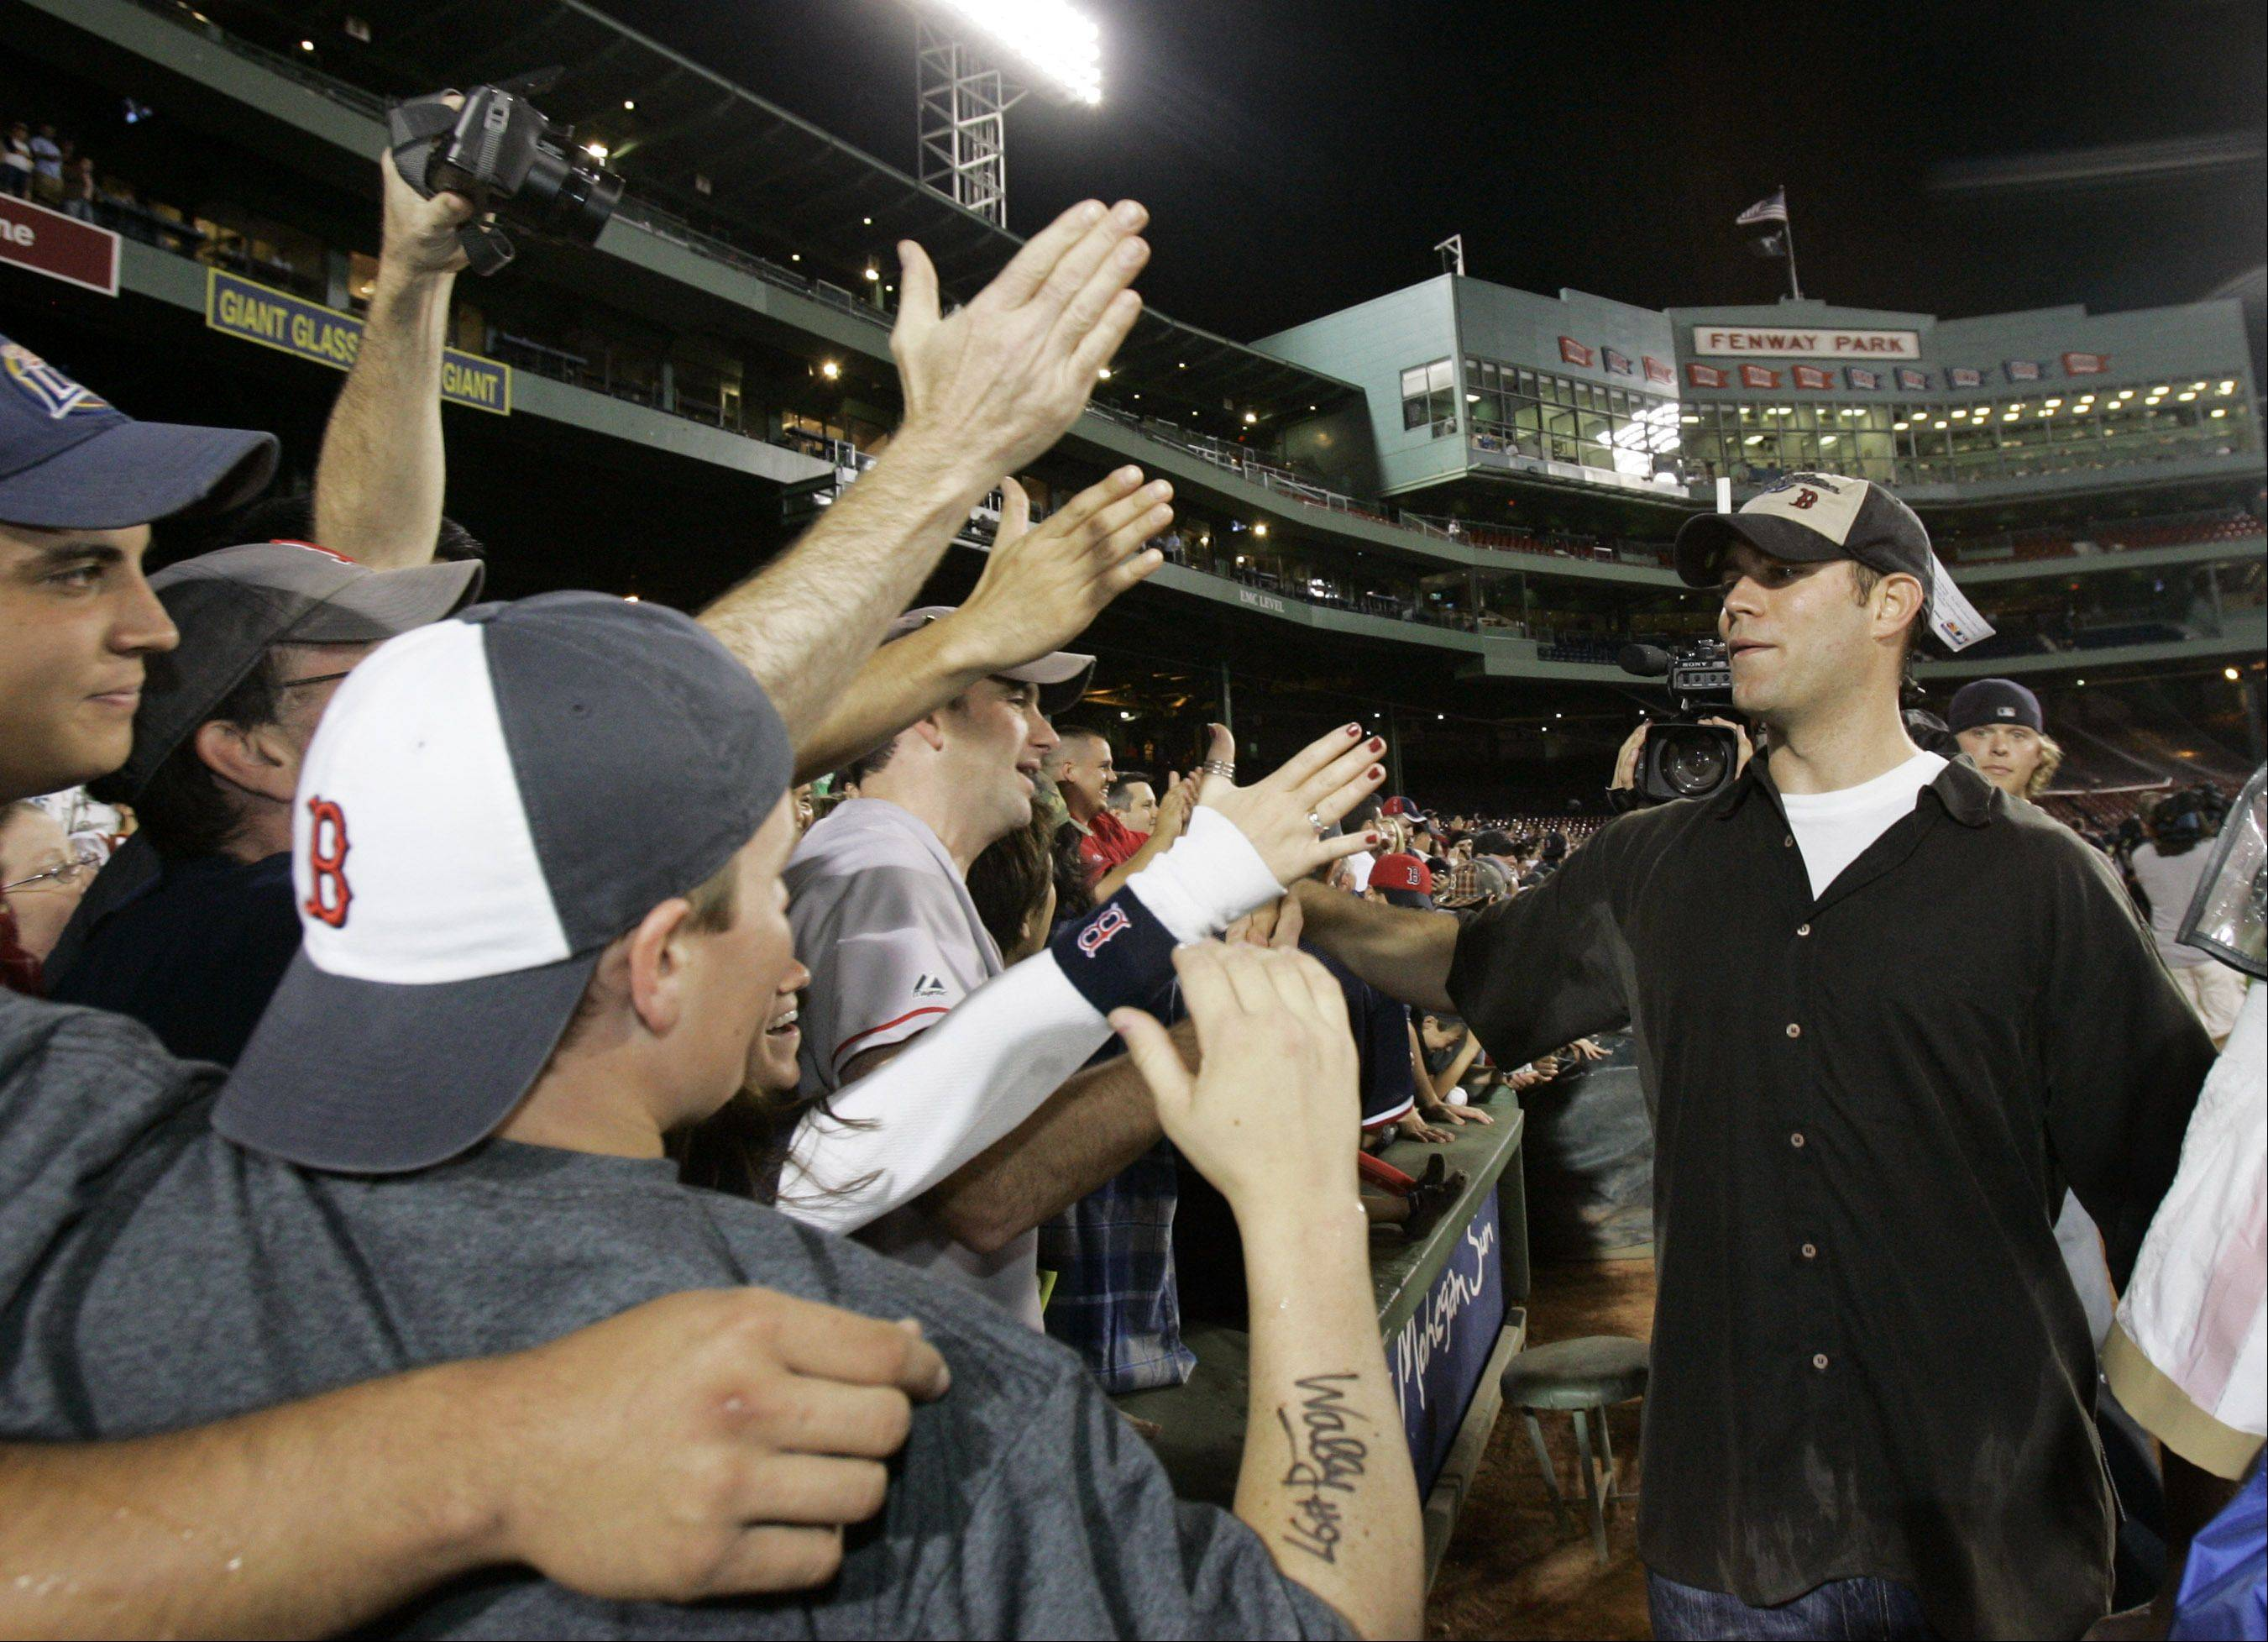 Boston Red Sox general manager Theo Epstein, right, slaps hands with fans at Fenway Park in Boston, Friday, Sept. 28, 2007, as they celebrate clinching the AL East.